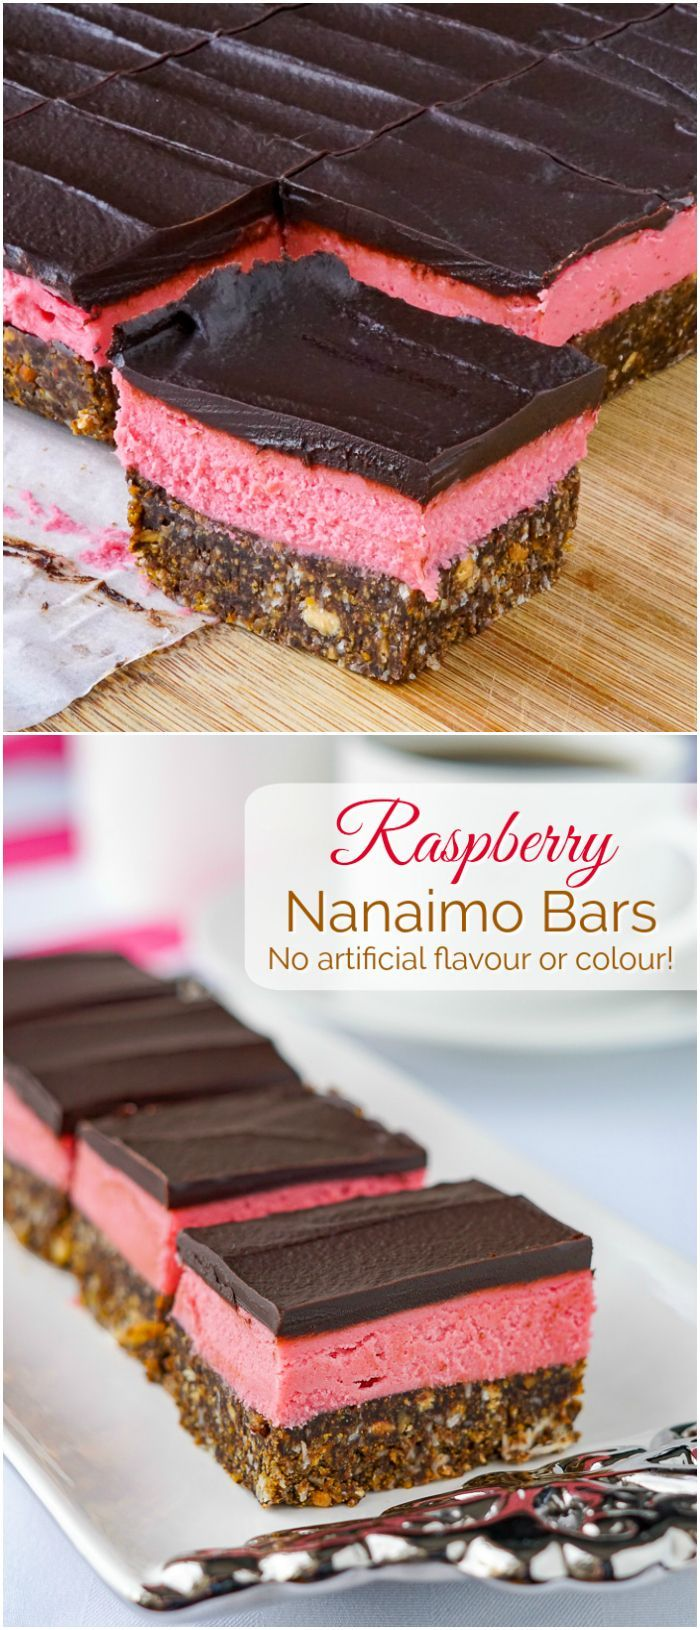 Raspberry Nanaimo bars - A delicious twist on a classic Canadian cookie bar treat. The have no artificial colours or flavours & they're no-bake too! Another addition to our great collection of #RockRecipes100Cookies4Christmas